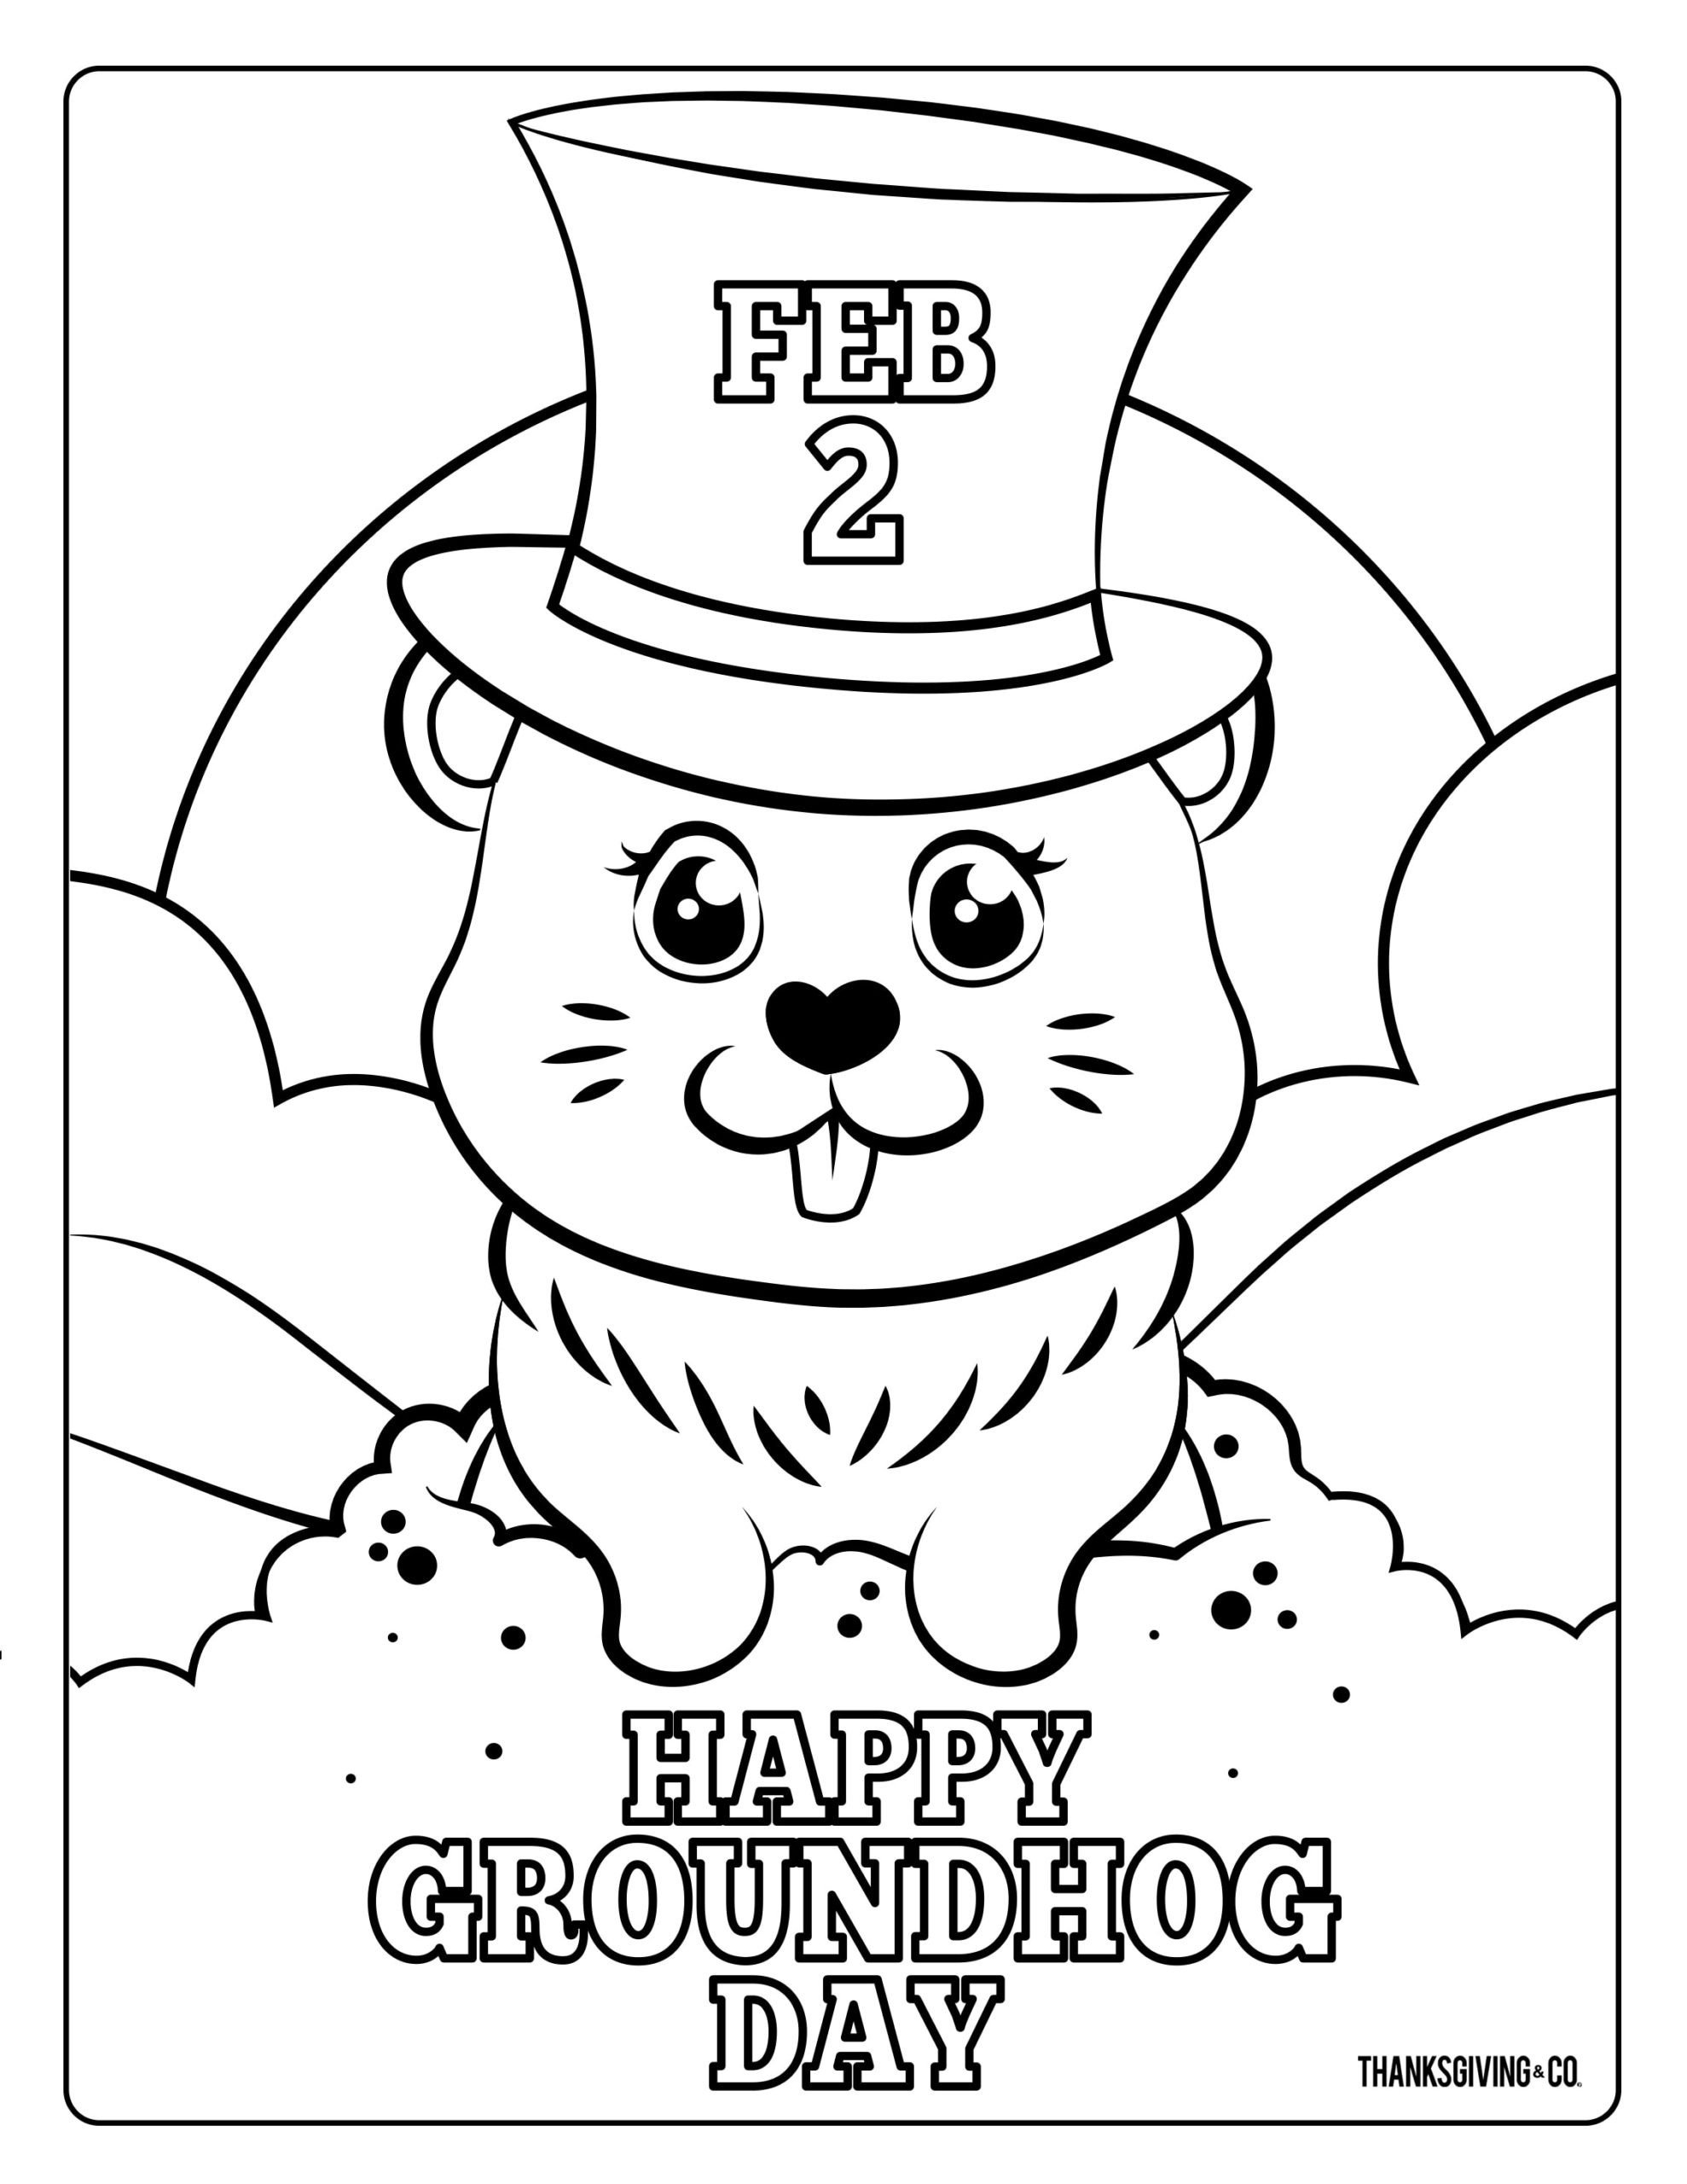 Groundhog Day Worksheets Kindergarten Groundhog Coloring Printable Free Worksheets Adorable for